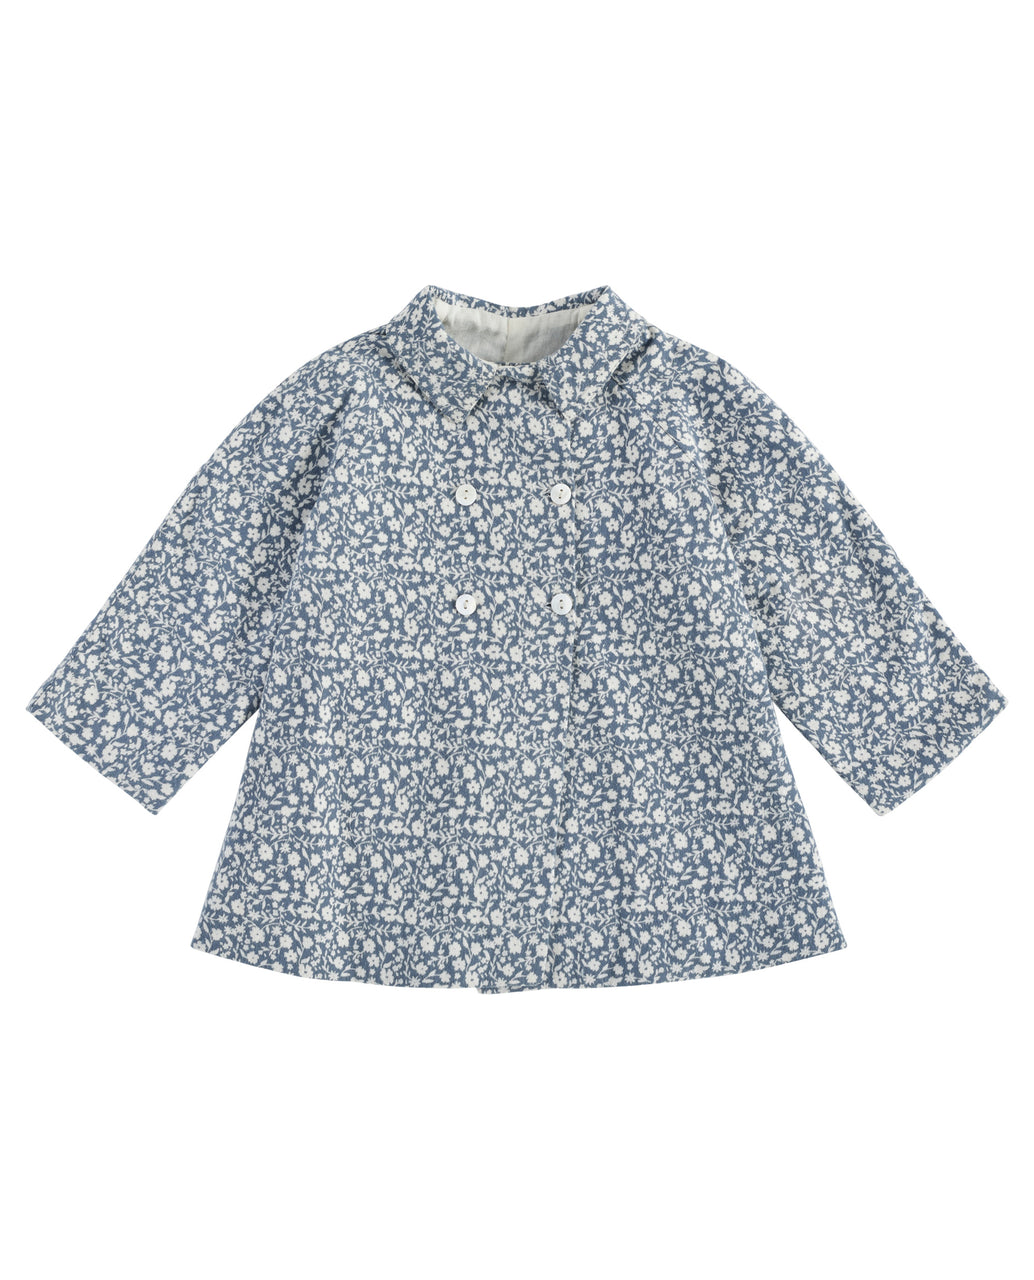 Sophie jacket - blue floral brushed cotton